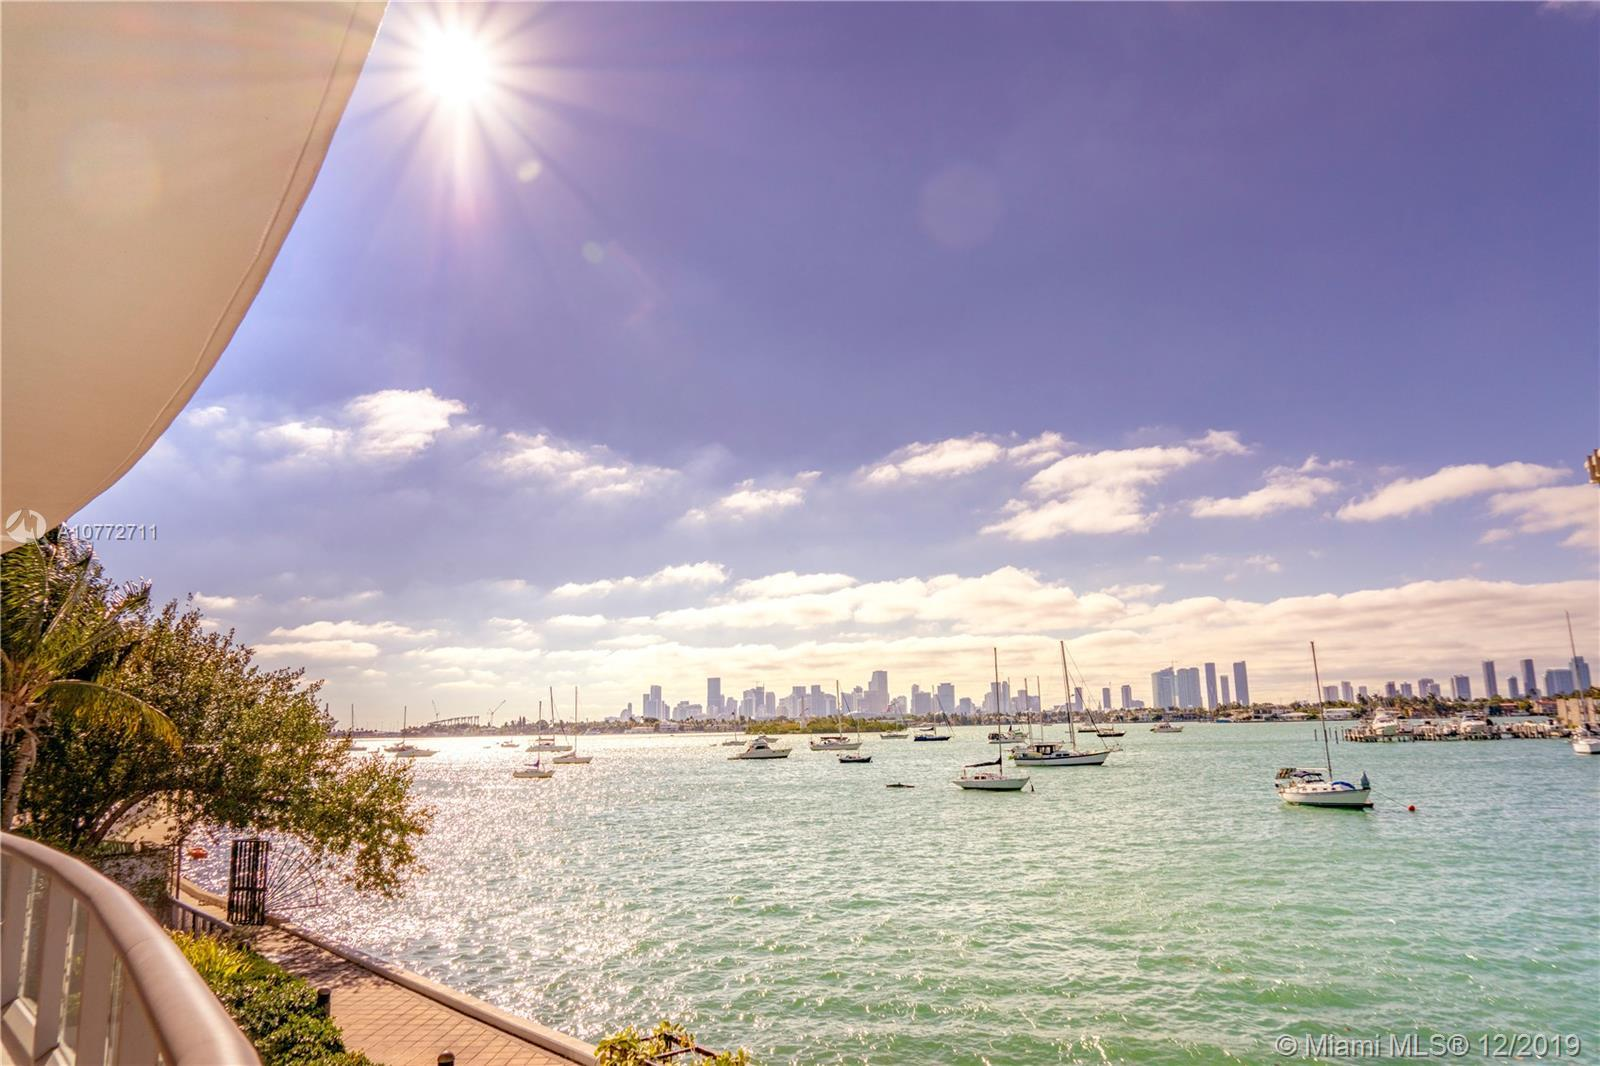 Spectacular 3 bd bayfront w/34 ft dock at Capri, South Beach. Waterfront living at its best. Direct